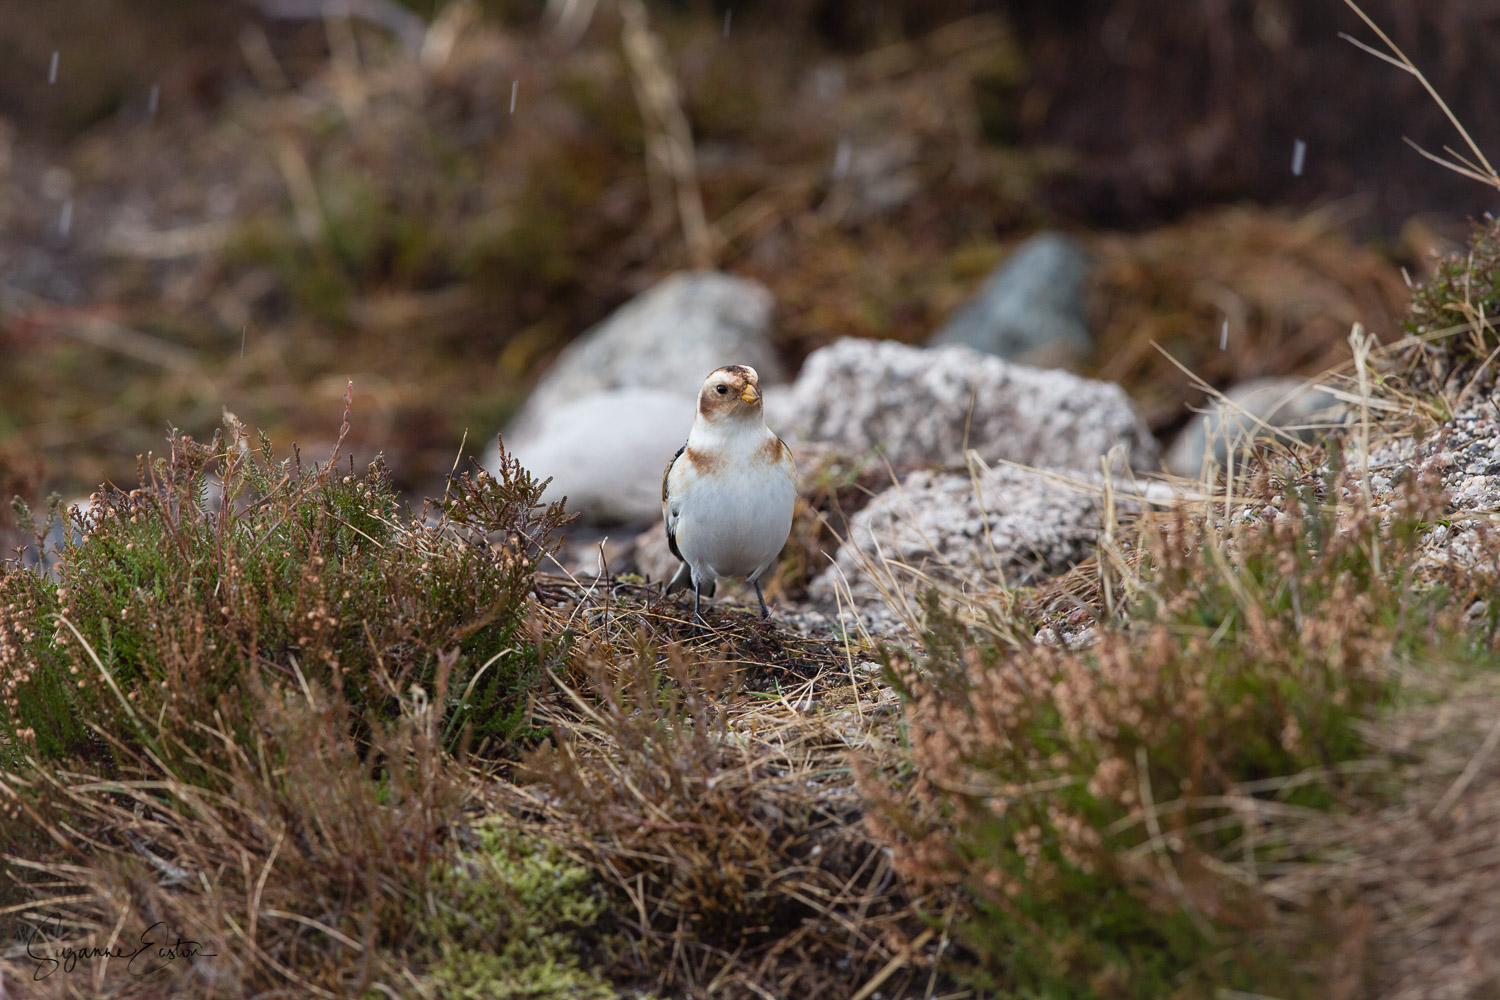 Snow bunting in the heather of the Scottish highlands